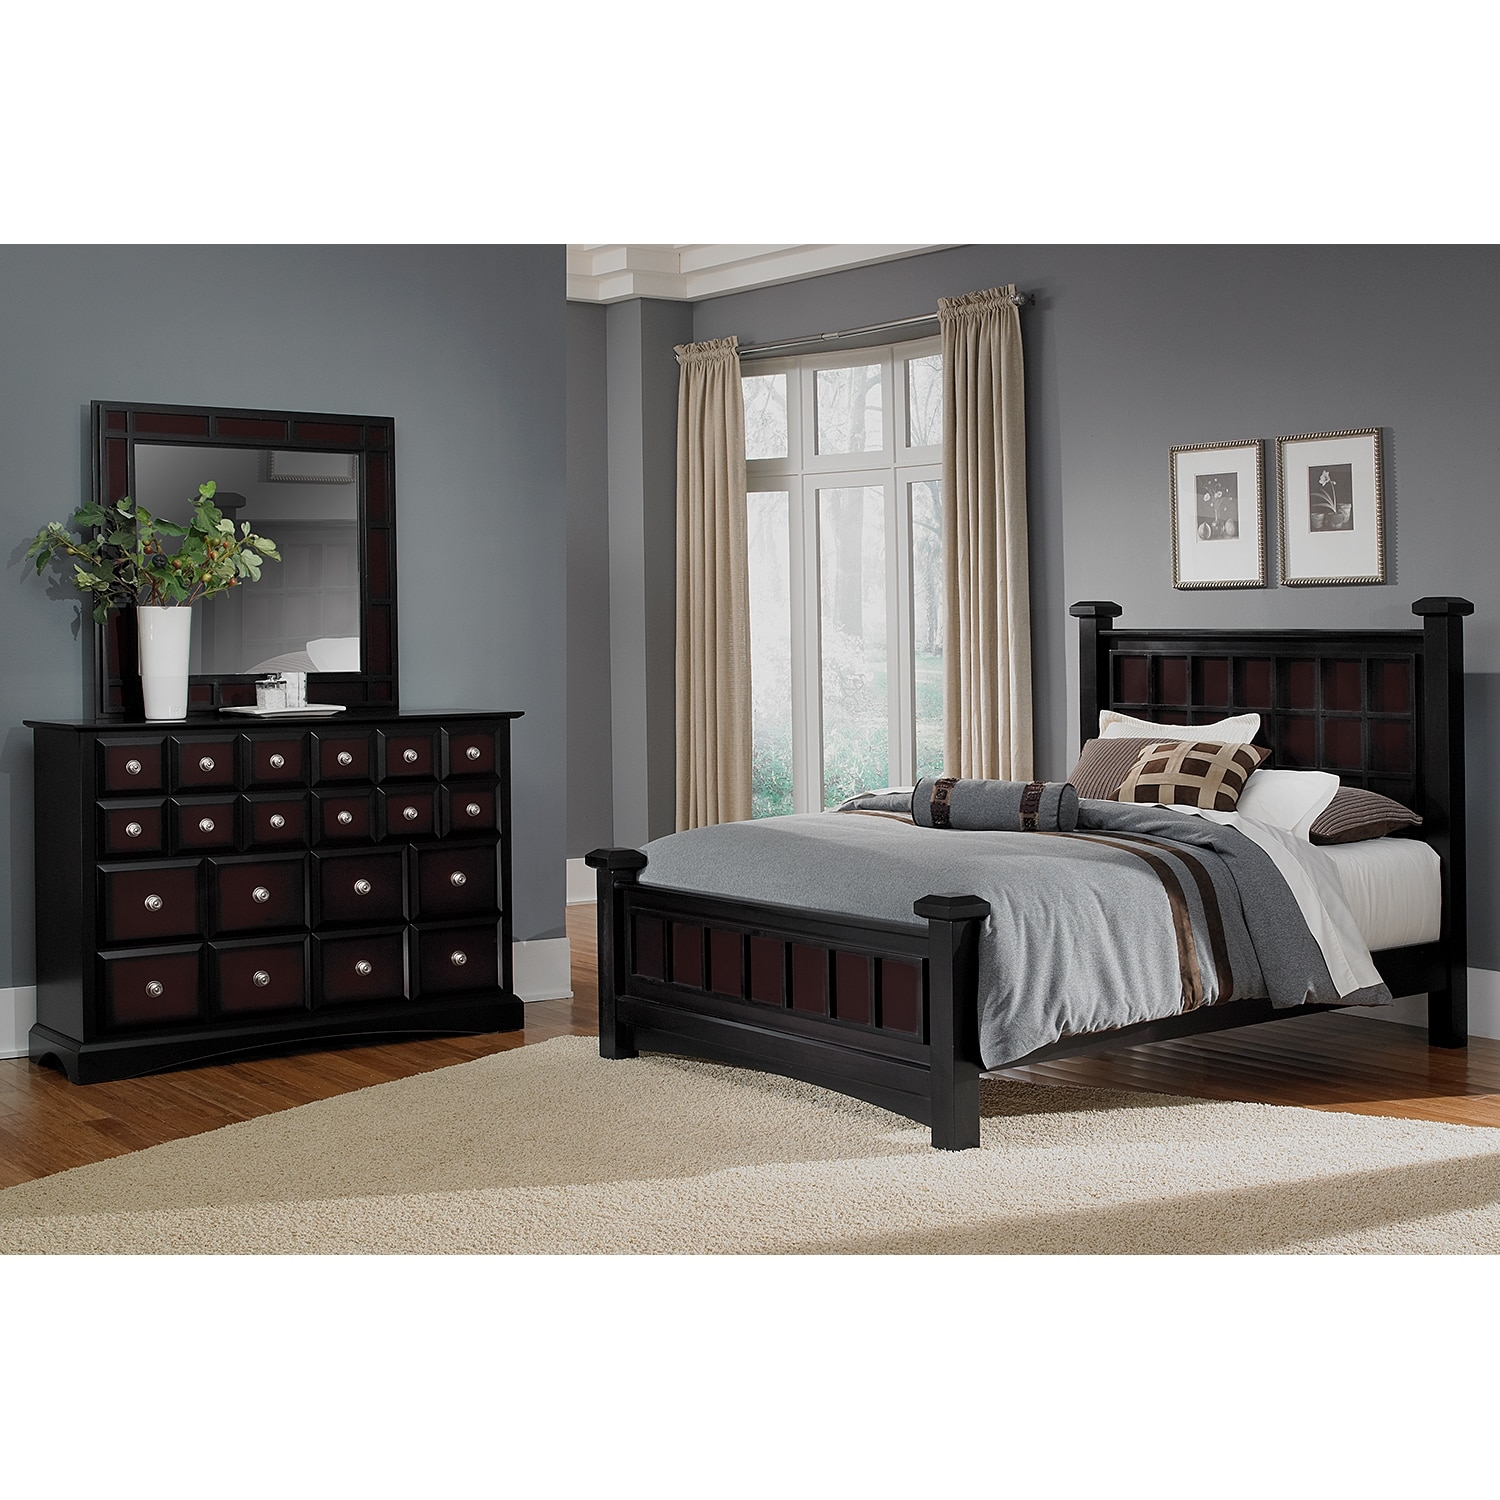 Winchester 5 pc queen bedroom american signature furniture for Cheap bedroom furniture packages